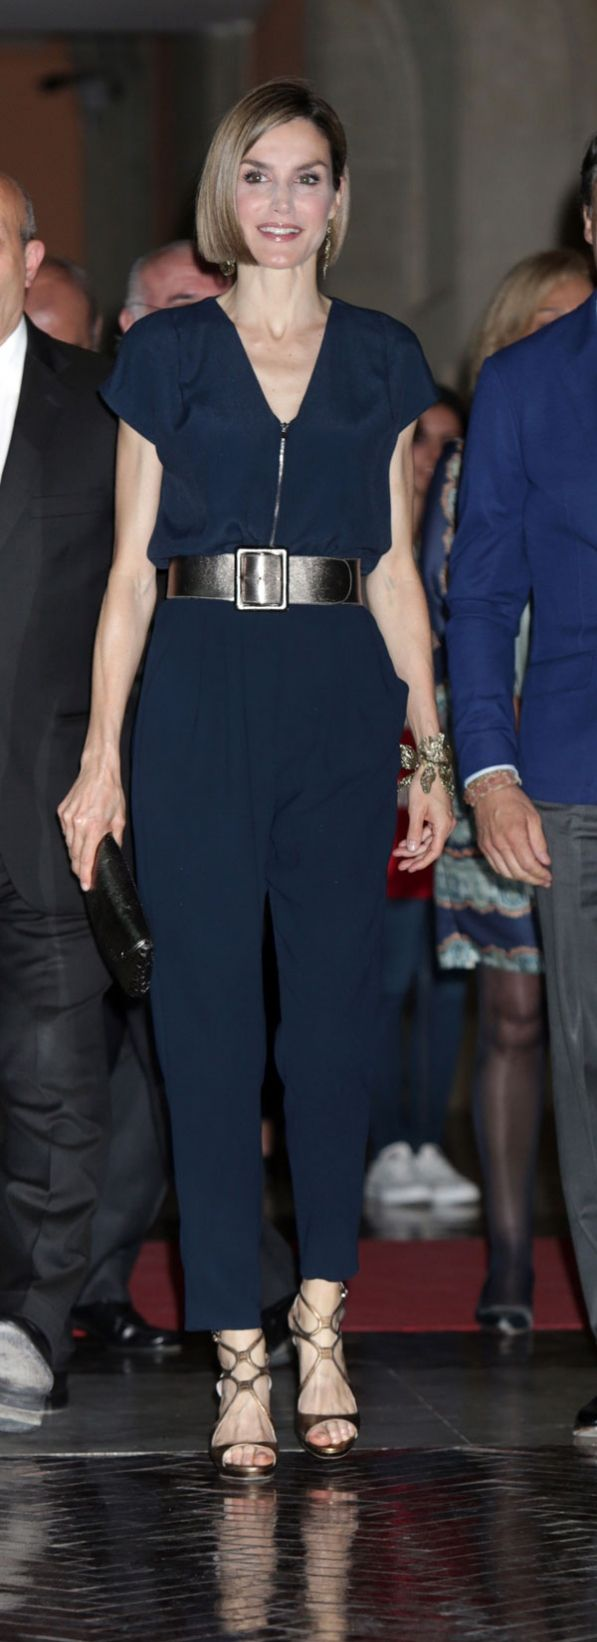 Queen Letizia of Spain attended the Barco de Vapor and Gran Angular Awards ceremony on April 21, 2015 in Madrid, Spain